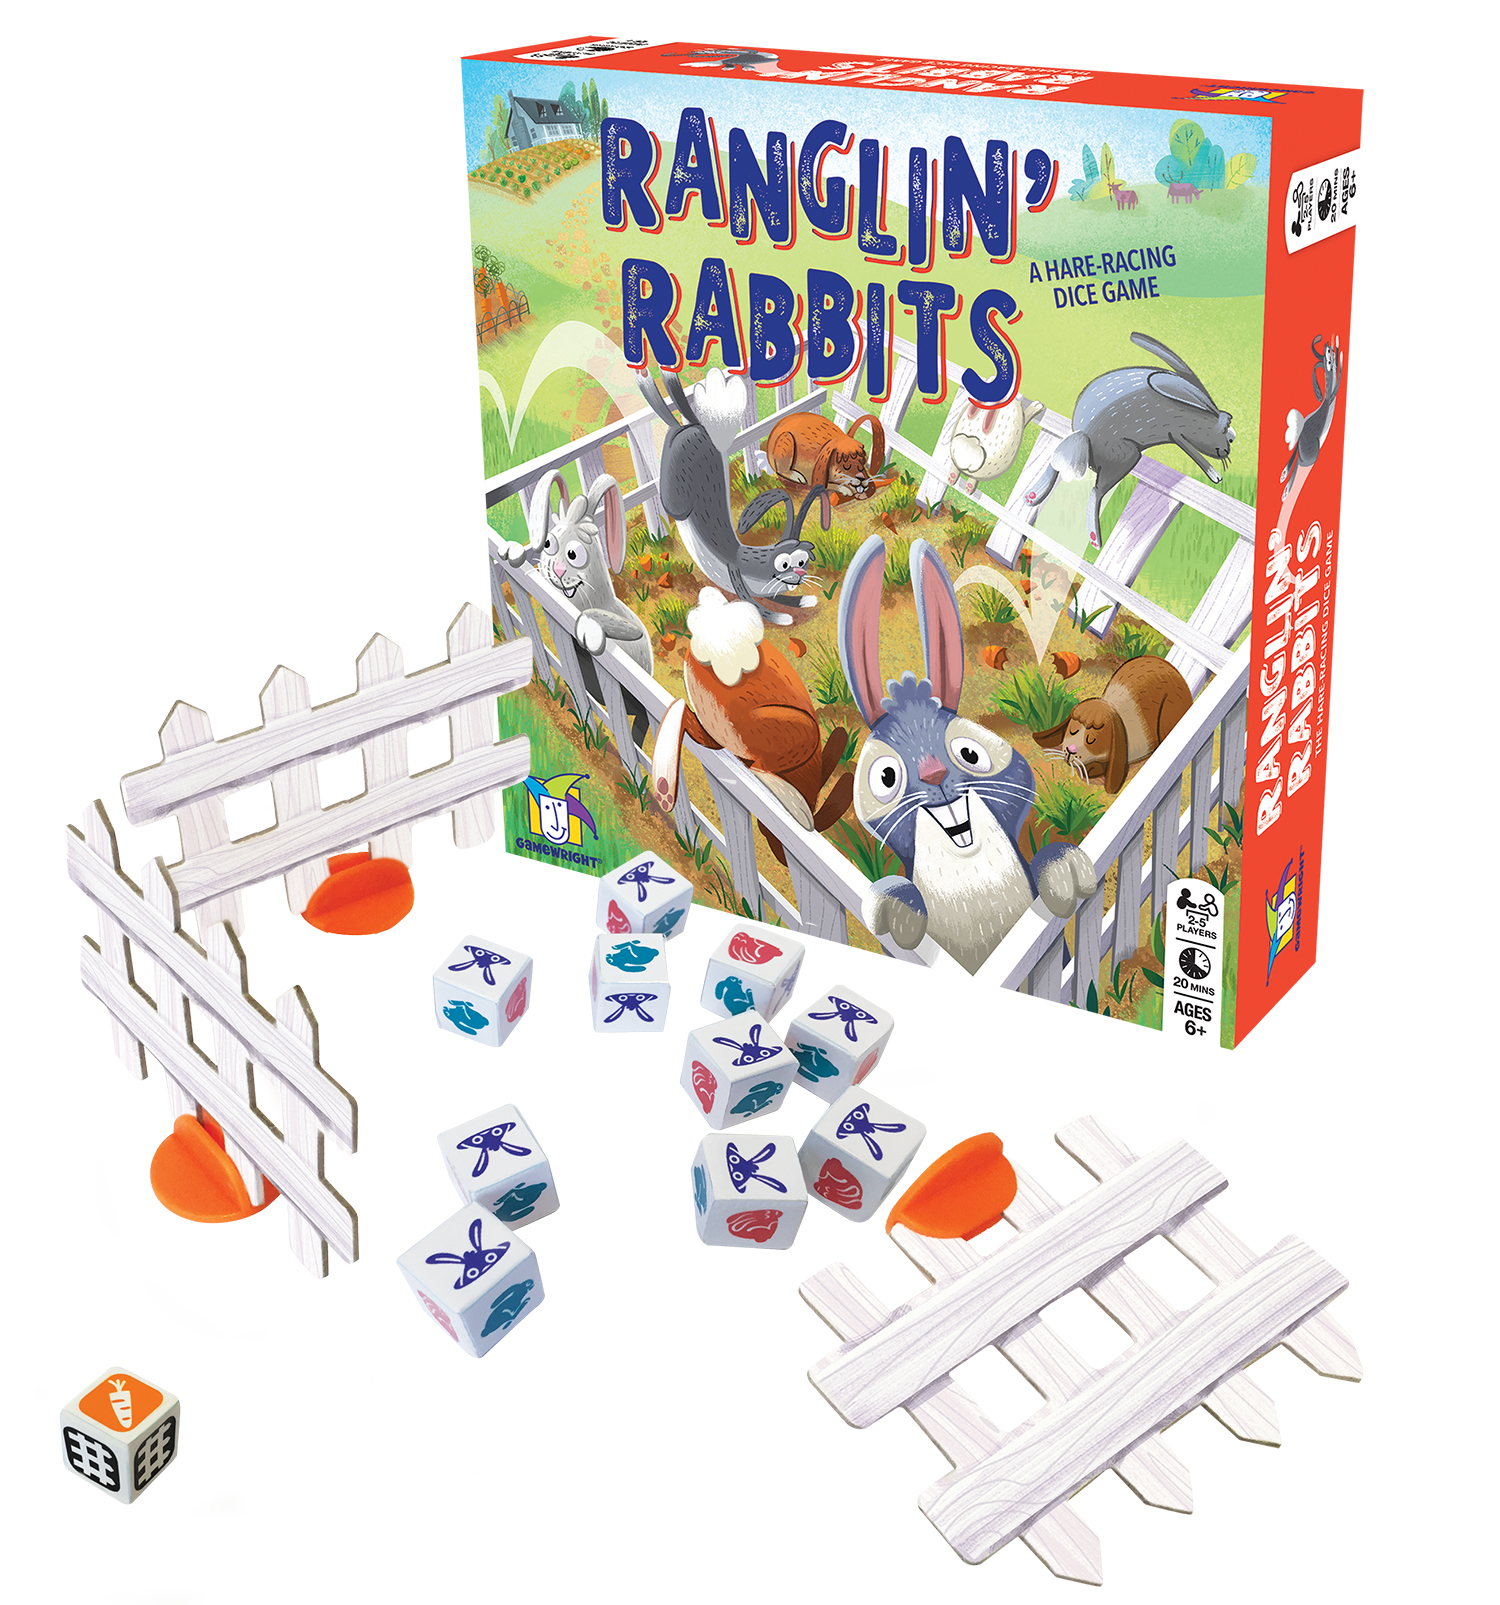 Ranglin039 RabbitsTM